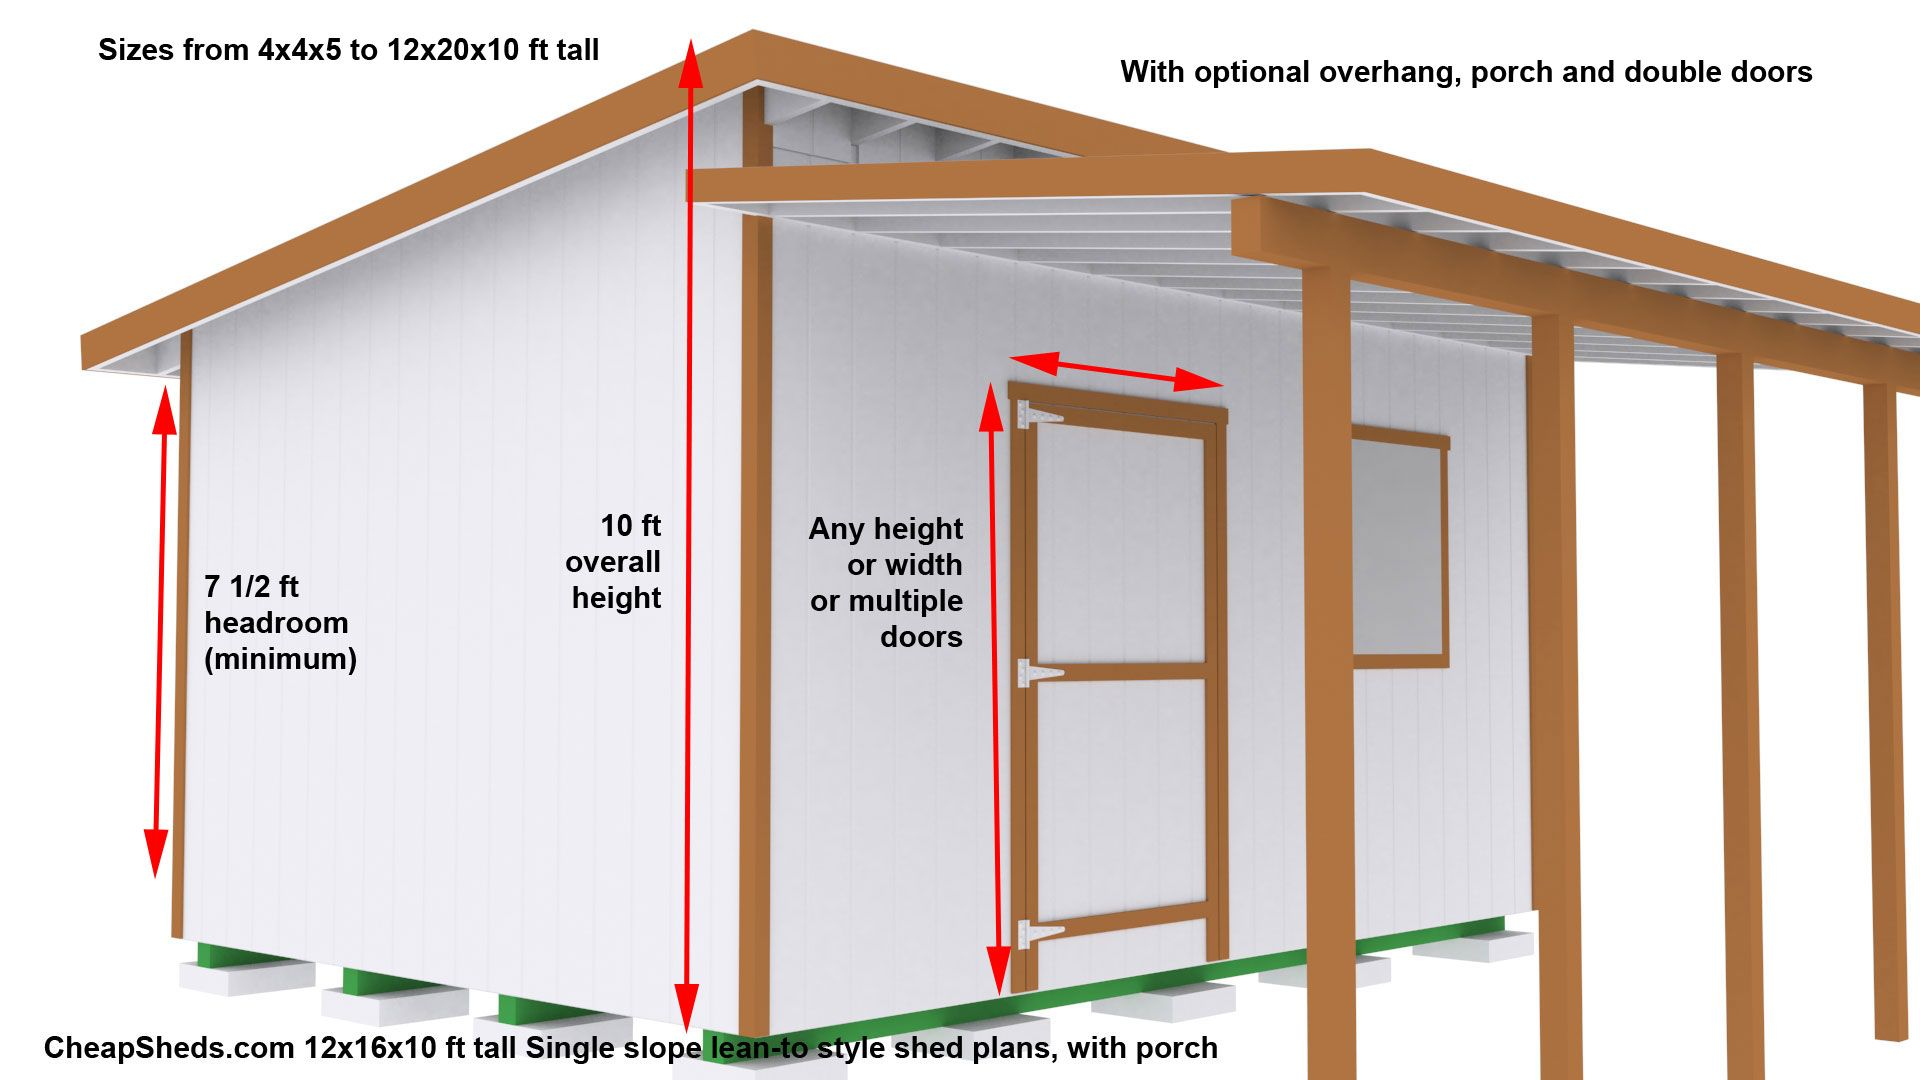 Lean To Style Sheds Shed Plans Storage Shed Plans Shed Plans 12x16